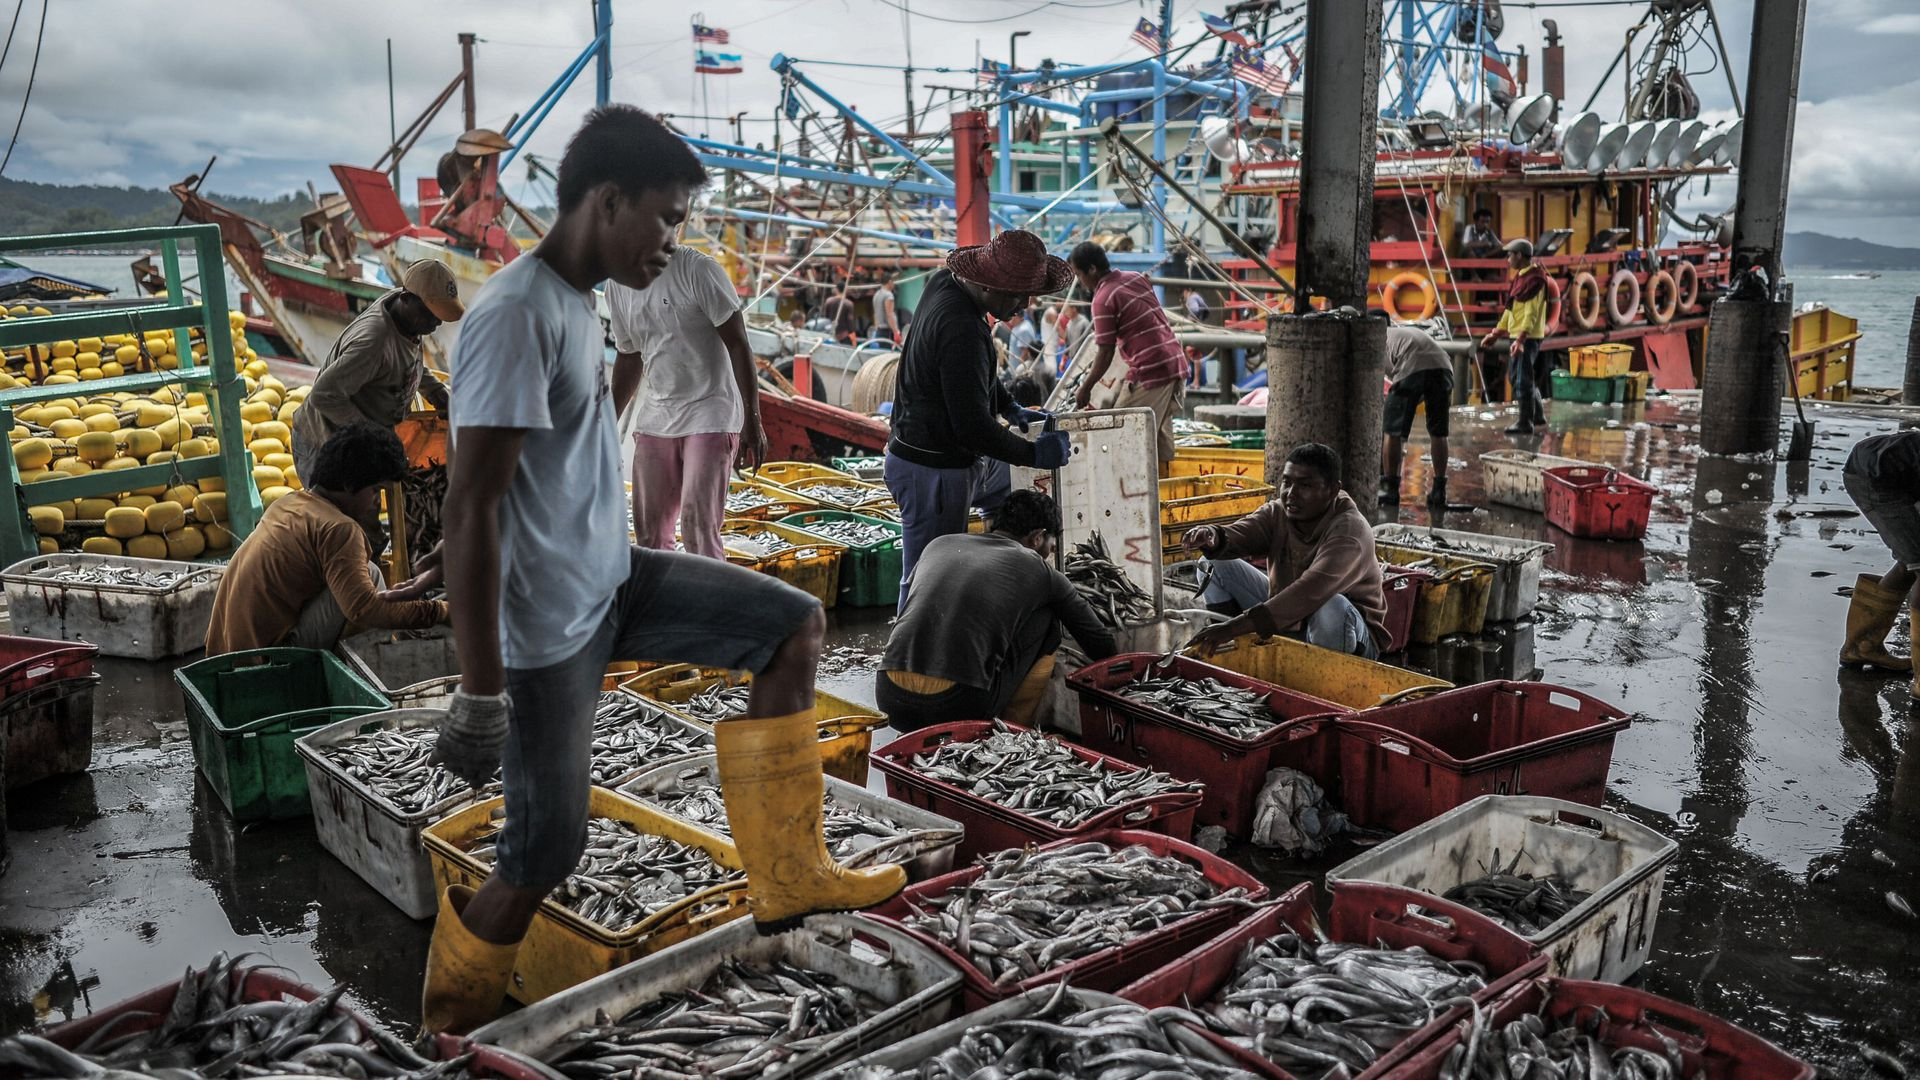 Fisherman stands with his boot on a crate of fresh fish